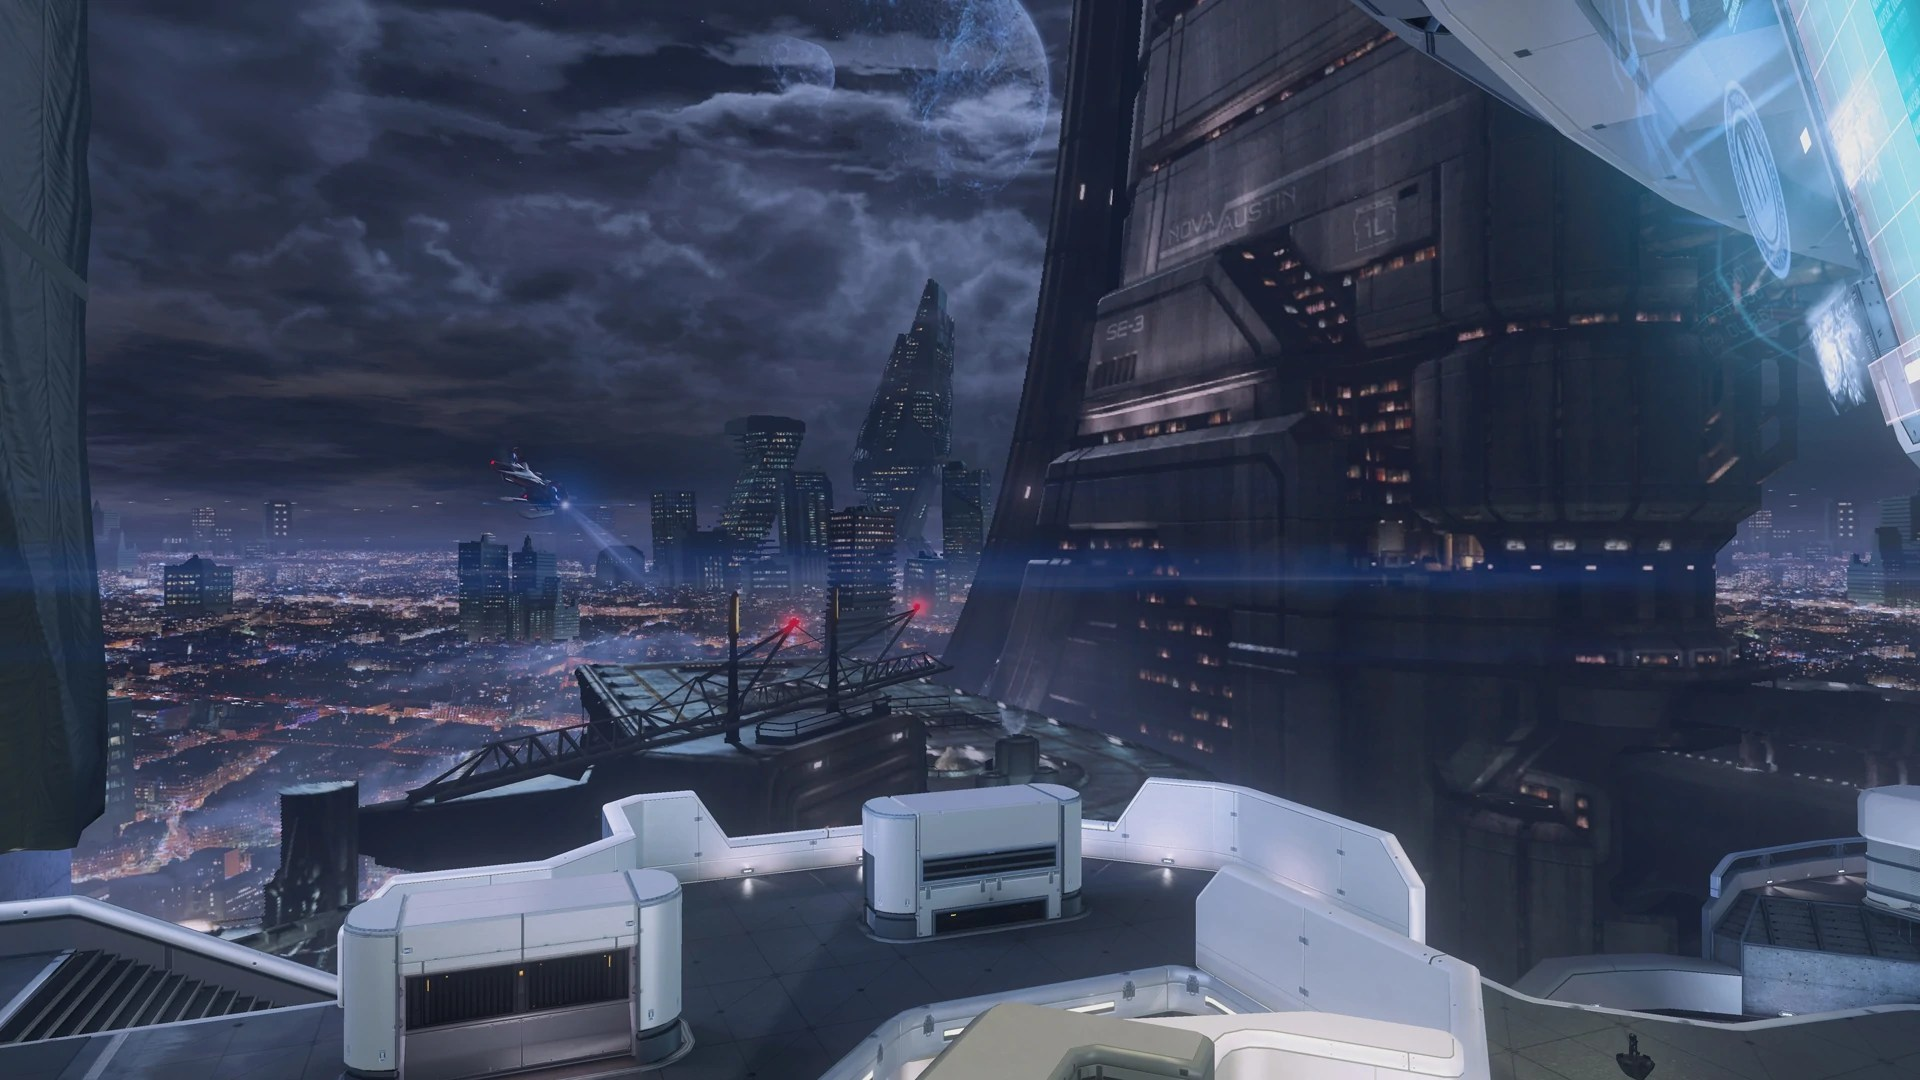 Hong Kong Iphone X Wallpaper I Love The Skybox Of The New Halo 4 Map Skyline Cyberpunk